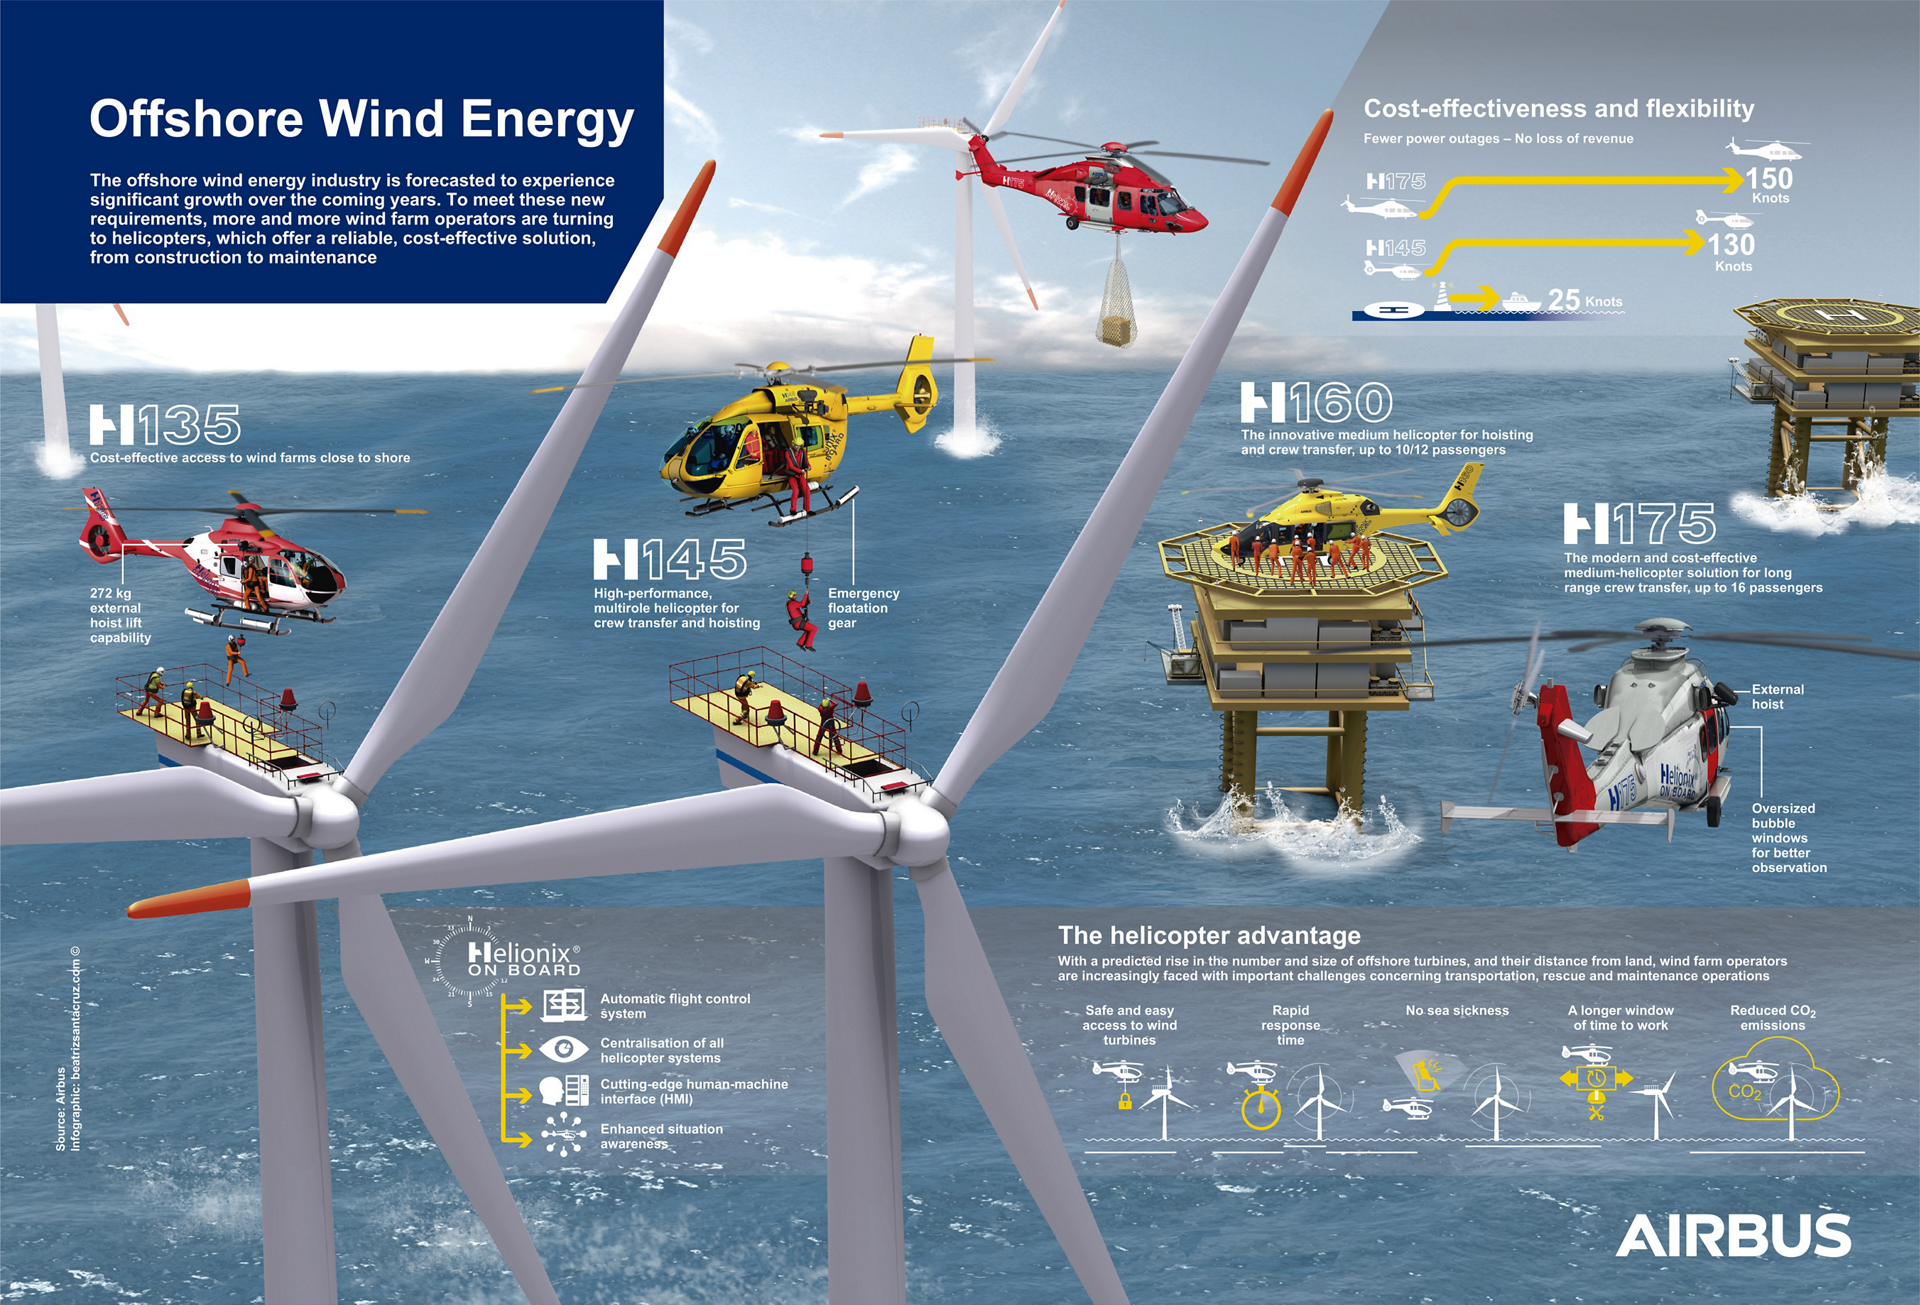 Airbus has a range of helicopters that can help the offshore wind energy industry meet new requirements in the years to come, including the H135, H145, H160 and H175.